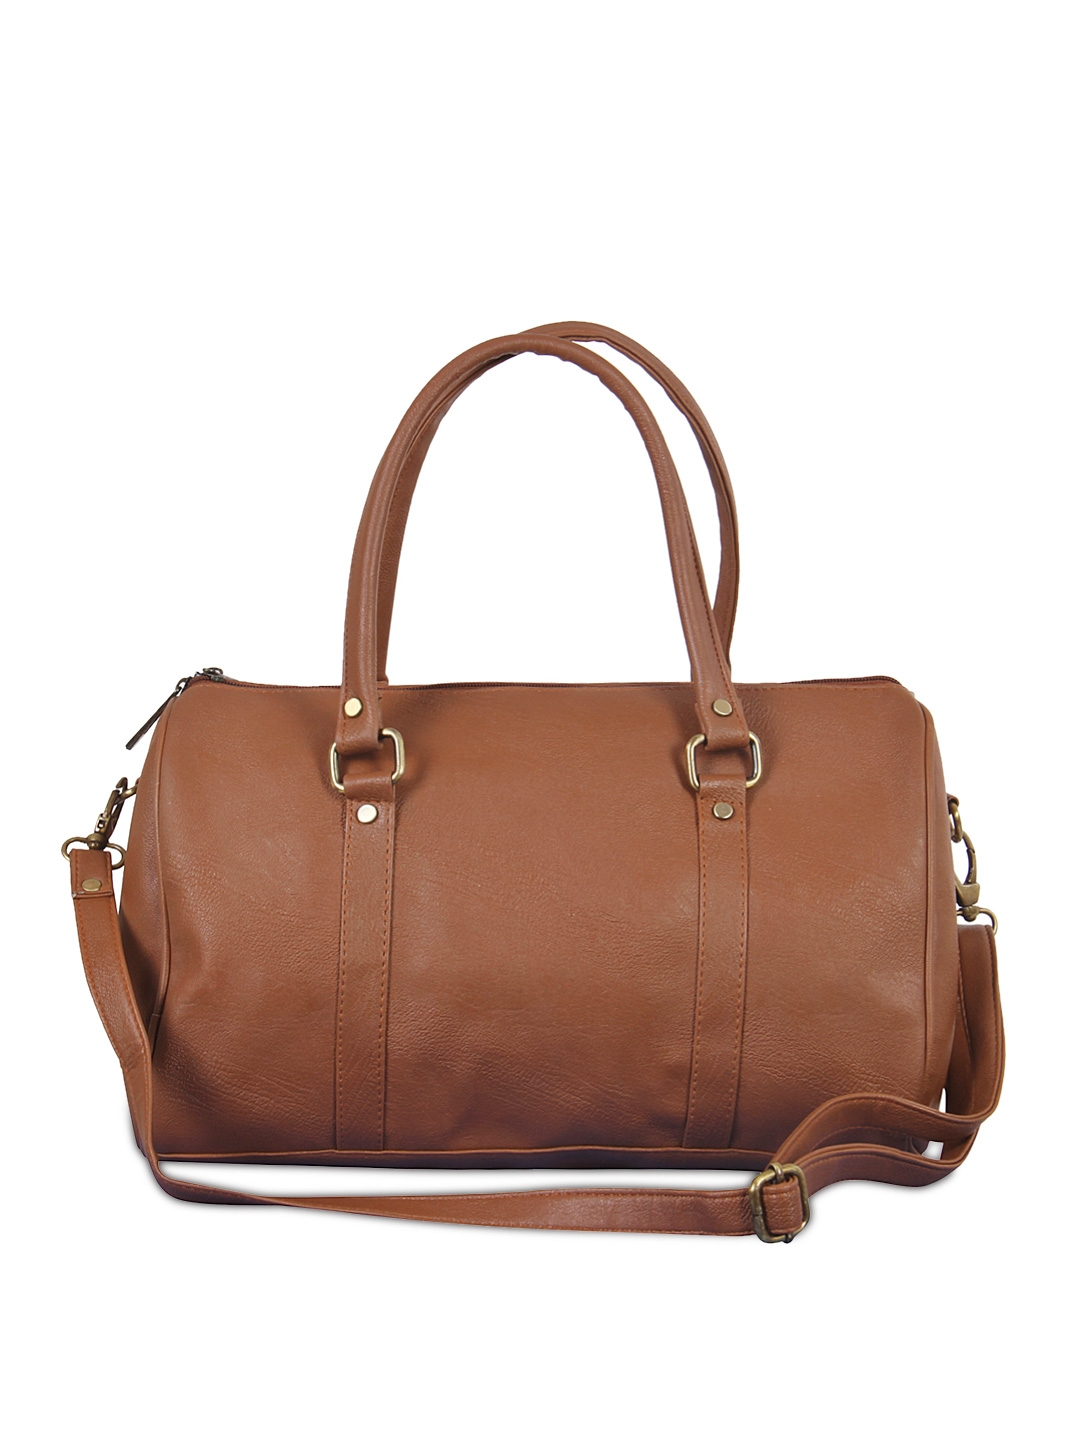 Handbags for Women - Buy Leather Handbags, Designer Handbags for ...